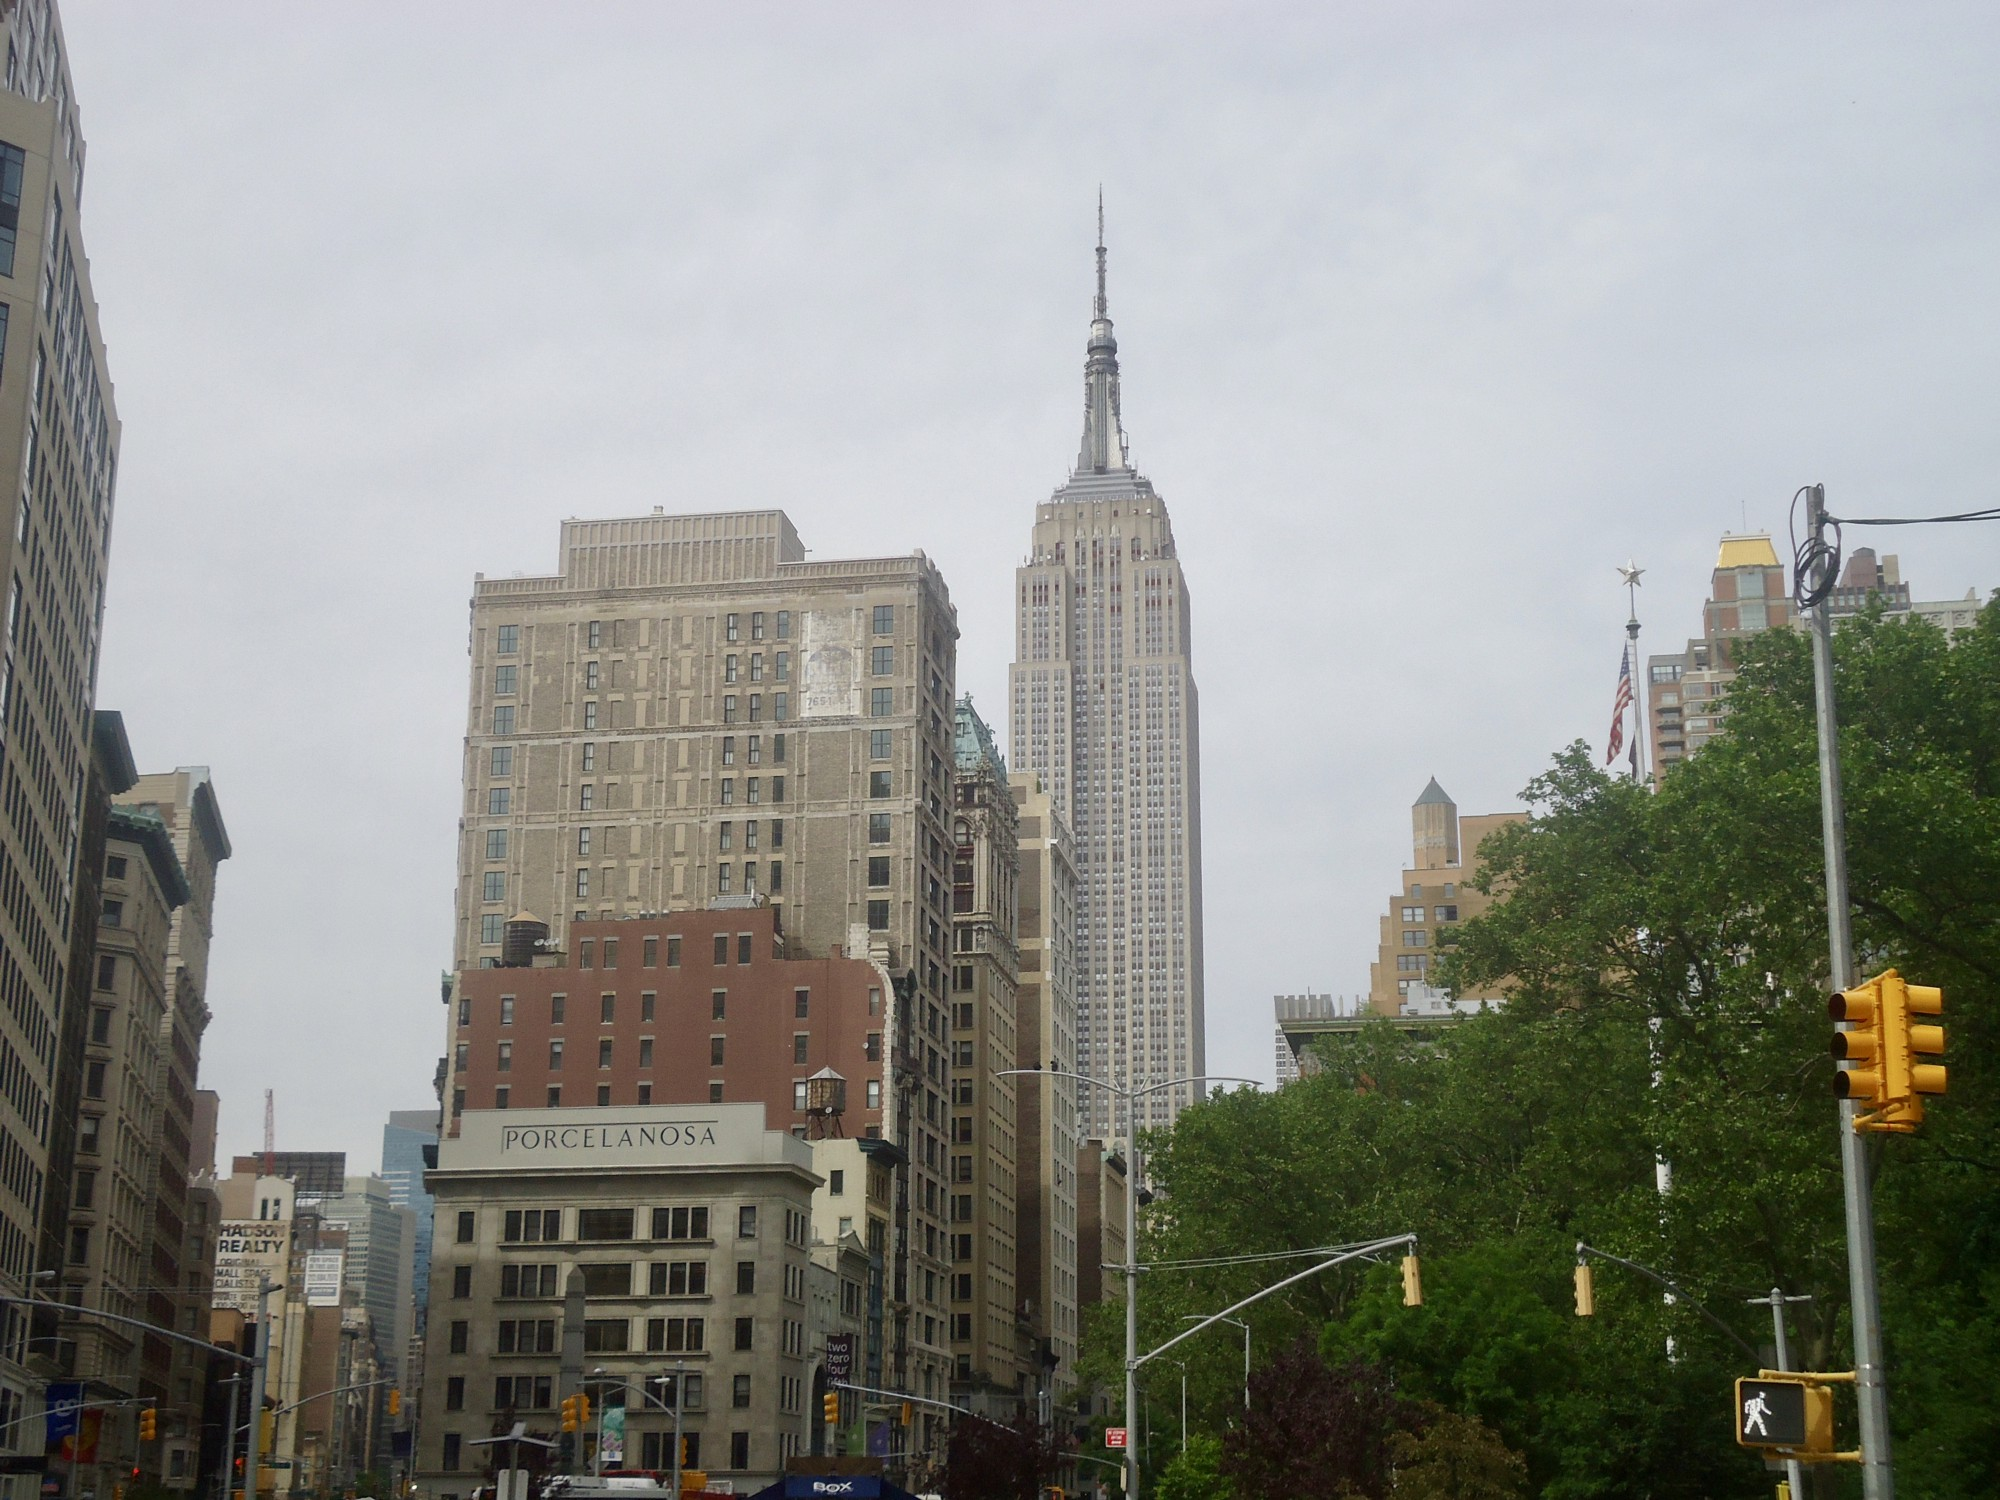 Empire State Building pictured from city streets of New York.